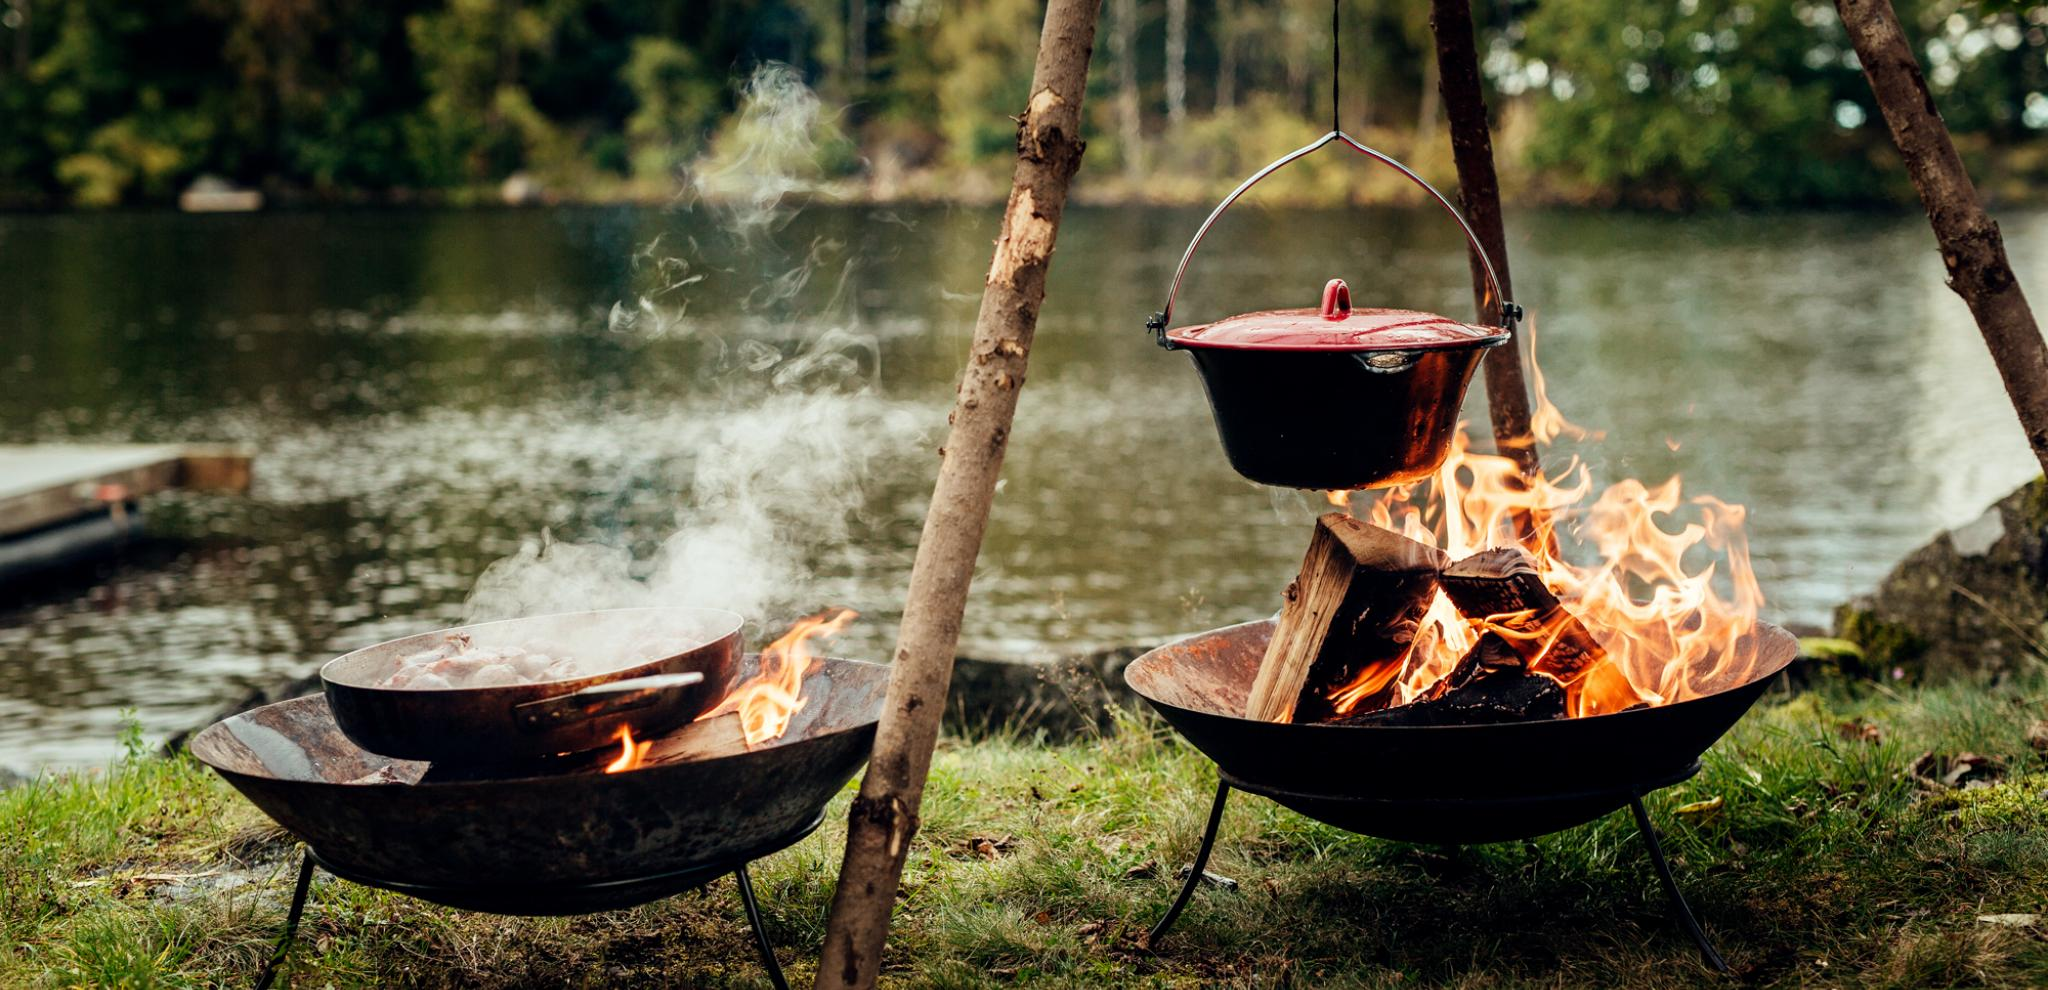 Outdoor cooking at Lake Immeln